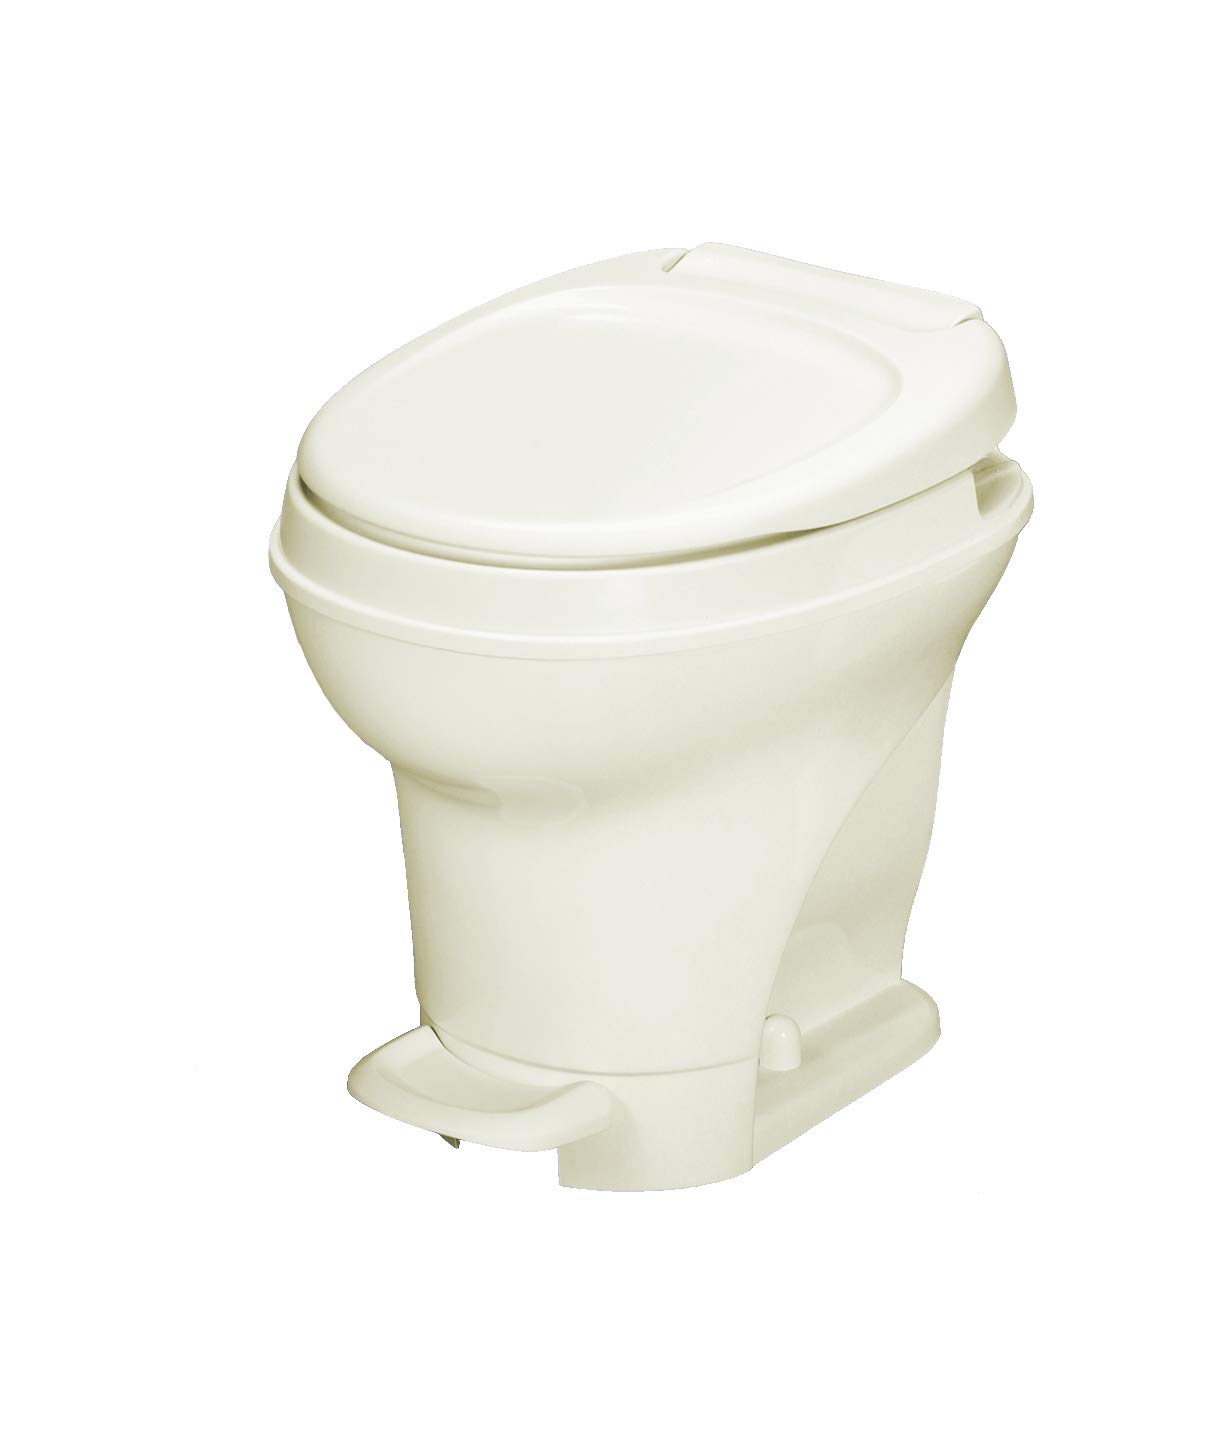 Aqua-Magic V RV Toilet Pedal Flush /High Profile / White, by Thetford - 31650 NOSYJ